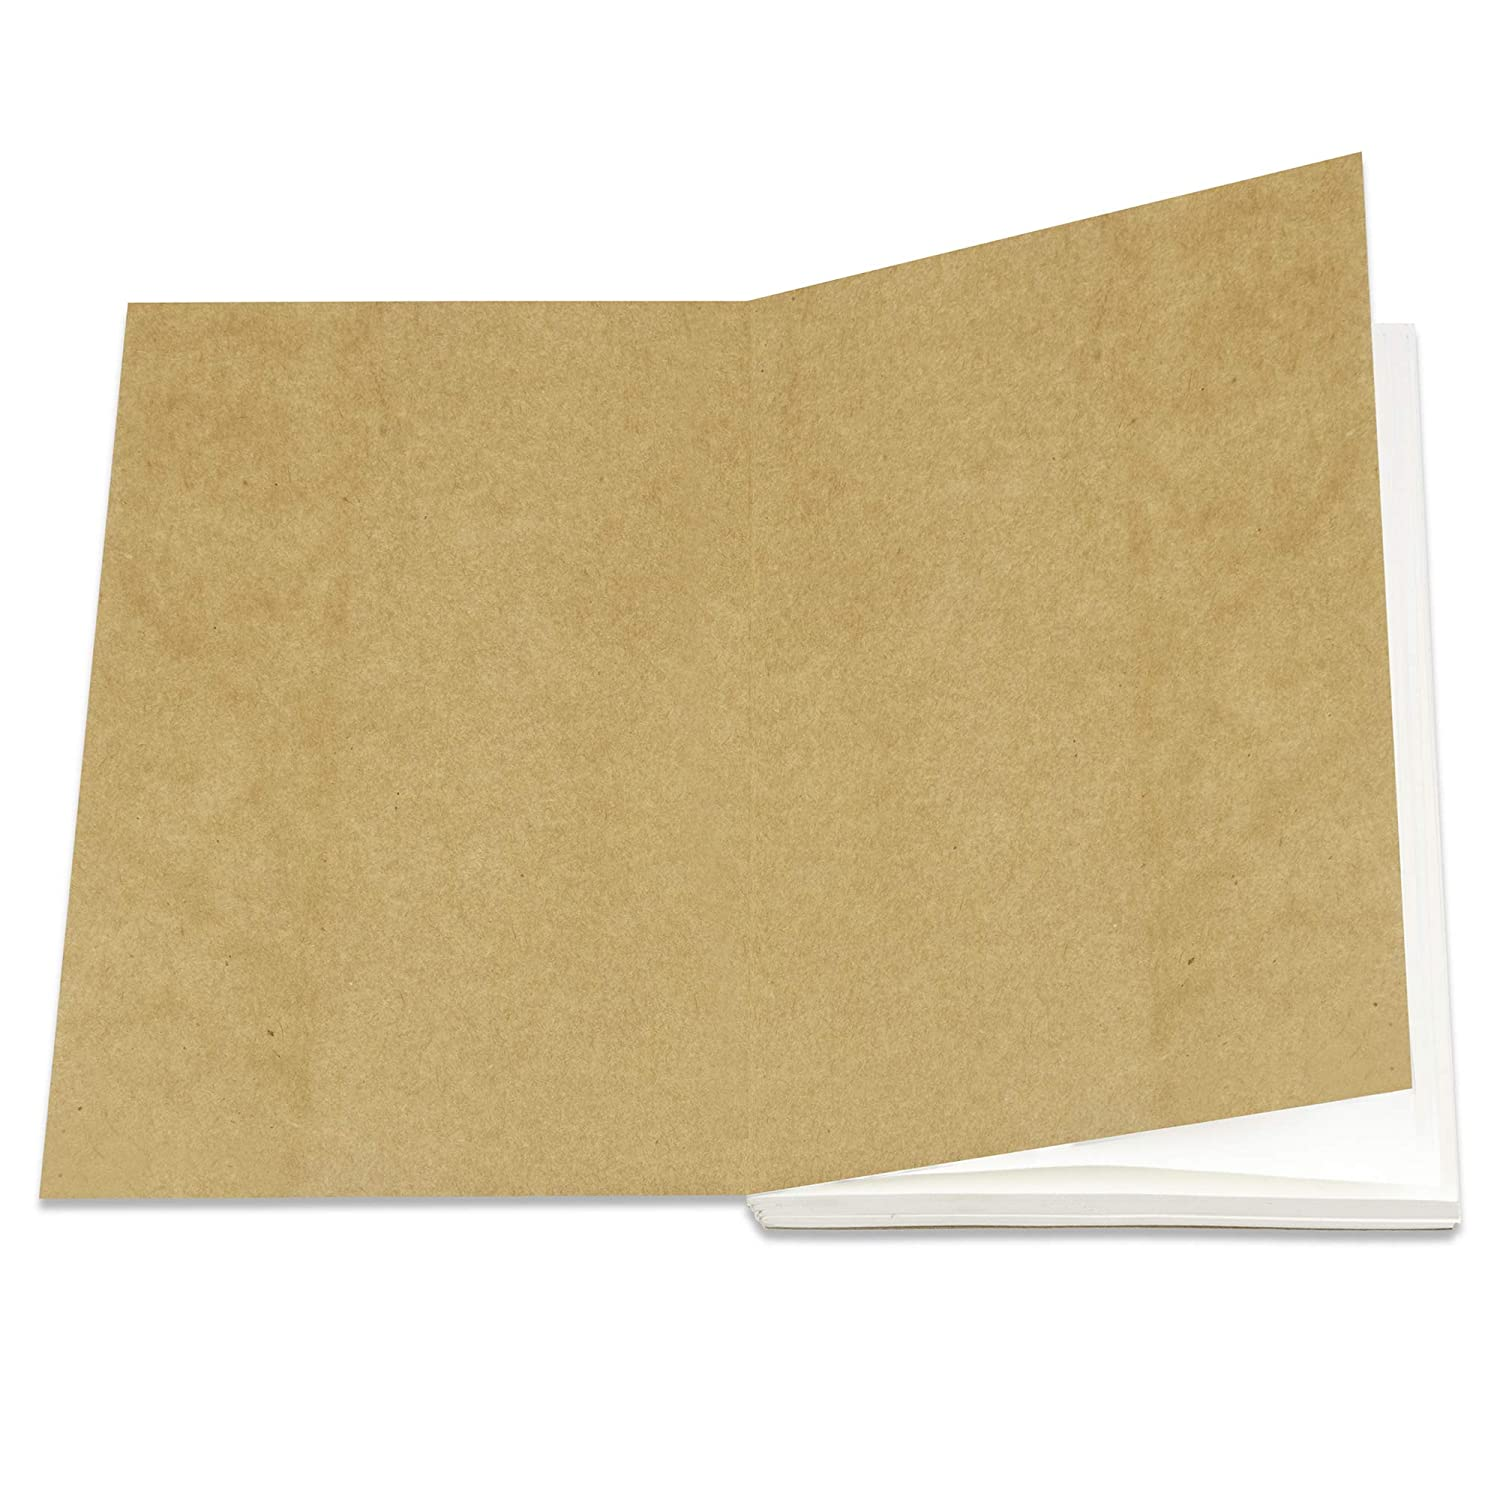 Eco Friendly Acid-Free and Tree-Free Recycled Cotton Sheets A5 Ruled Notepad 8.25 x 5.75 Inches with 220 Beautifully Soft Pages Lined Paper Refill Notebooks for Moonster Refillable Leather Journal